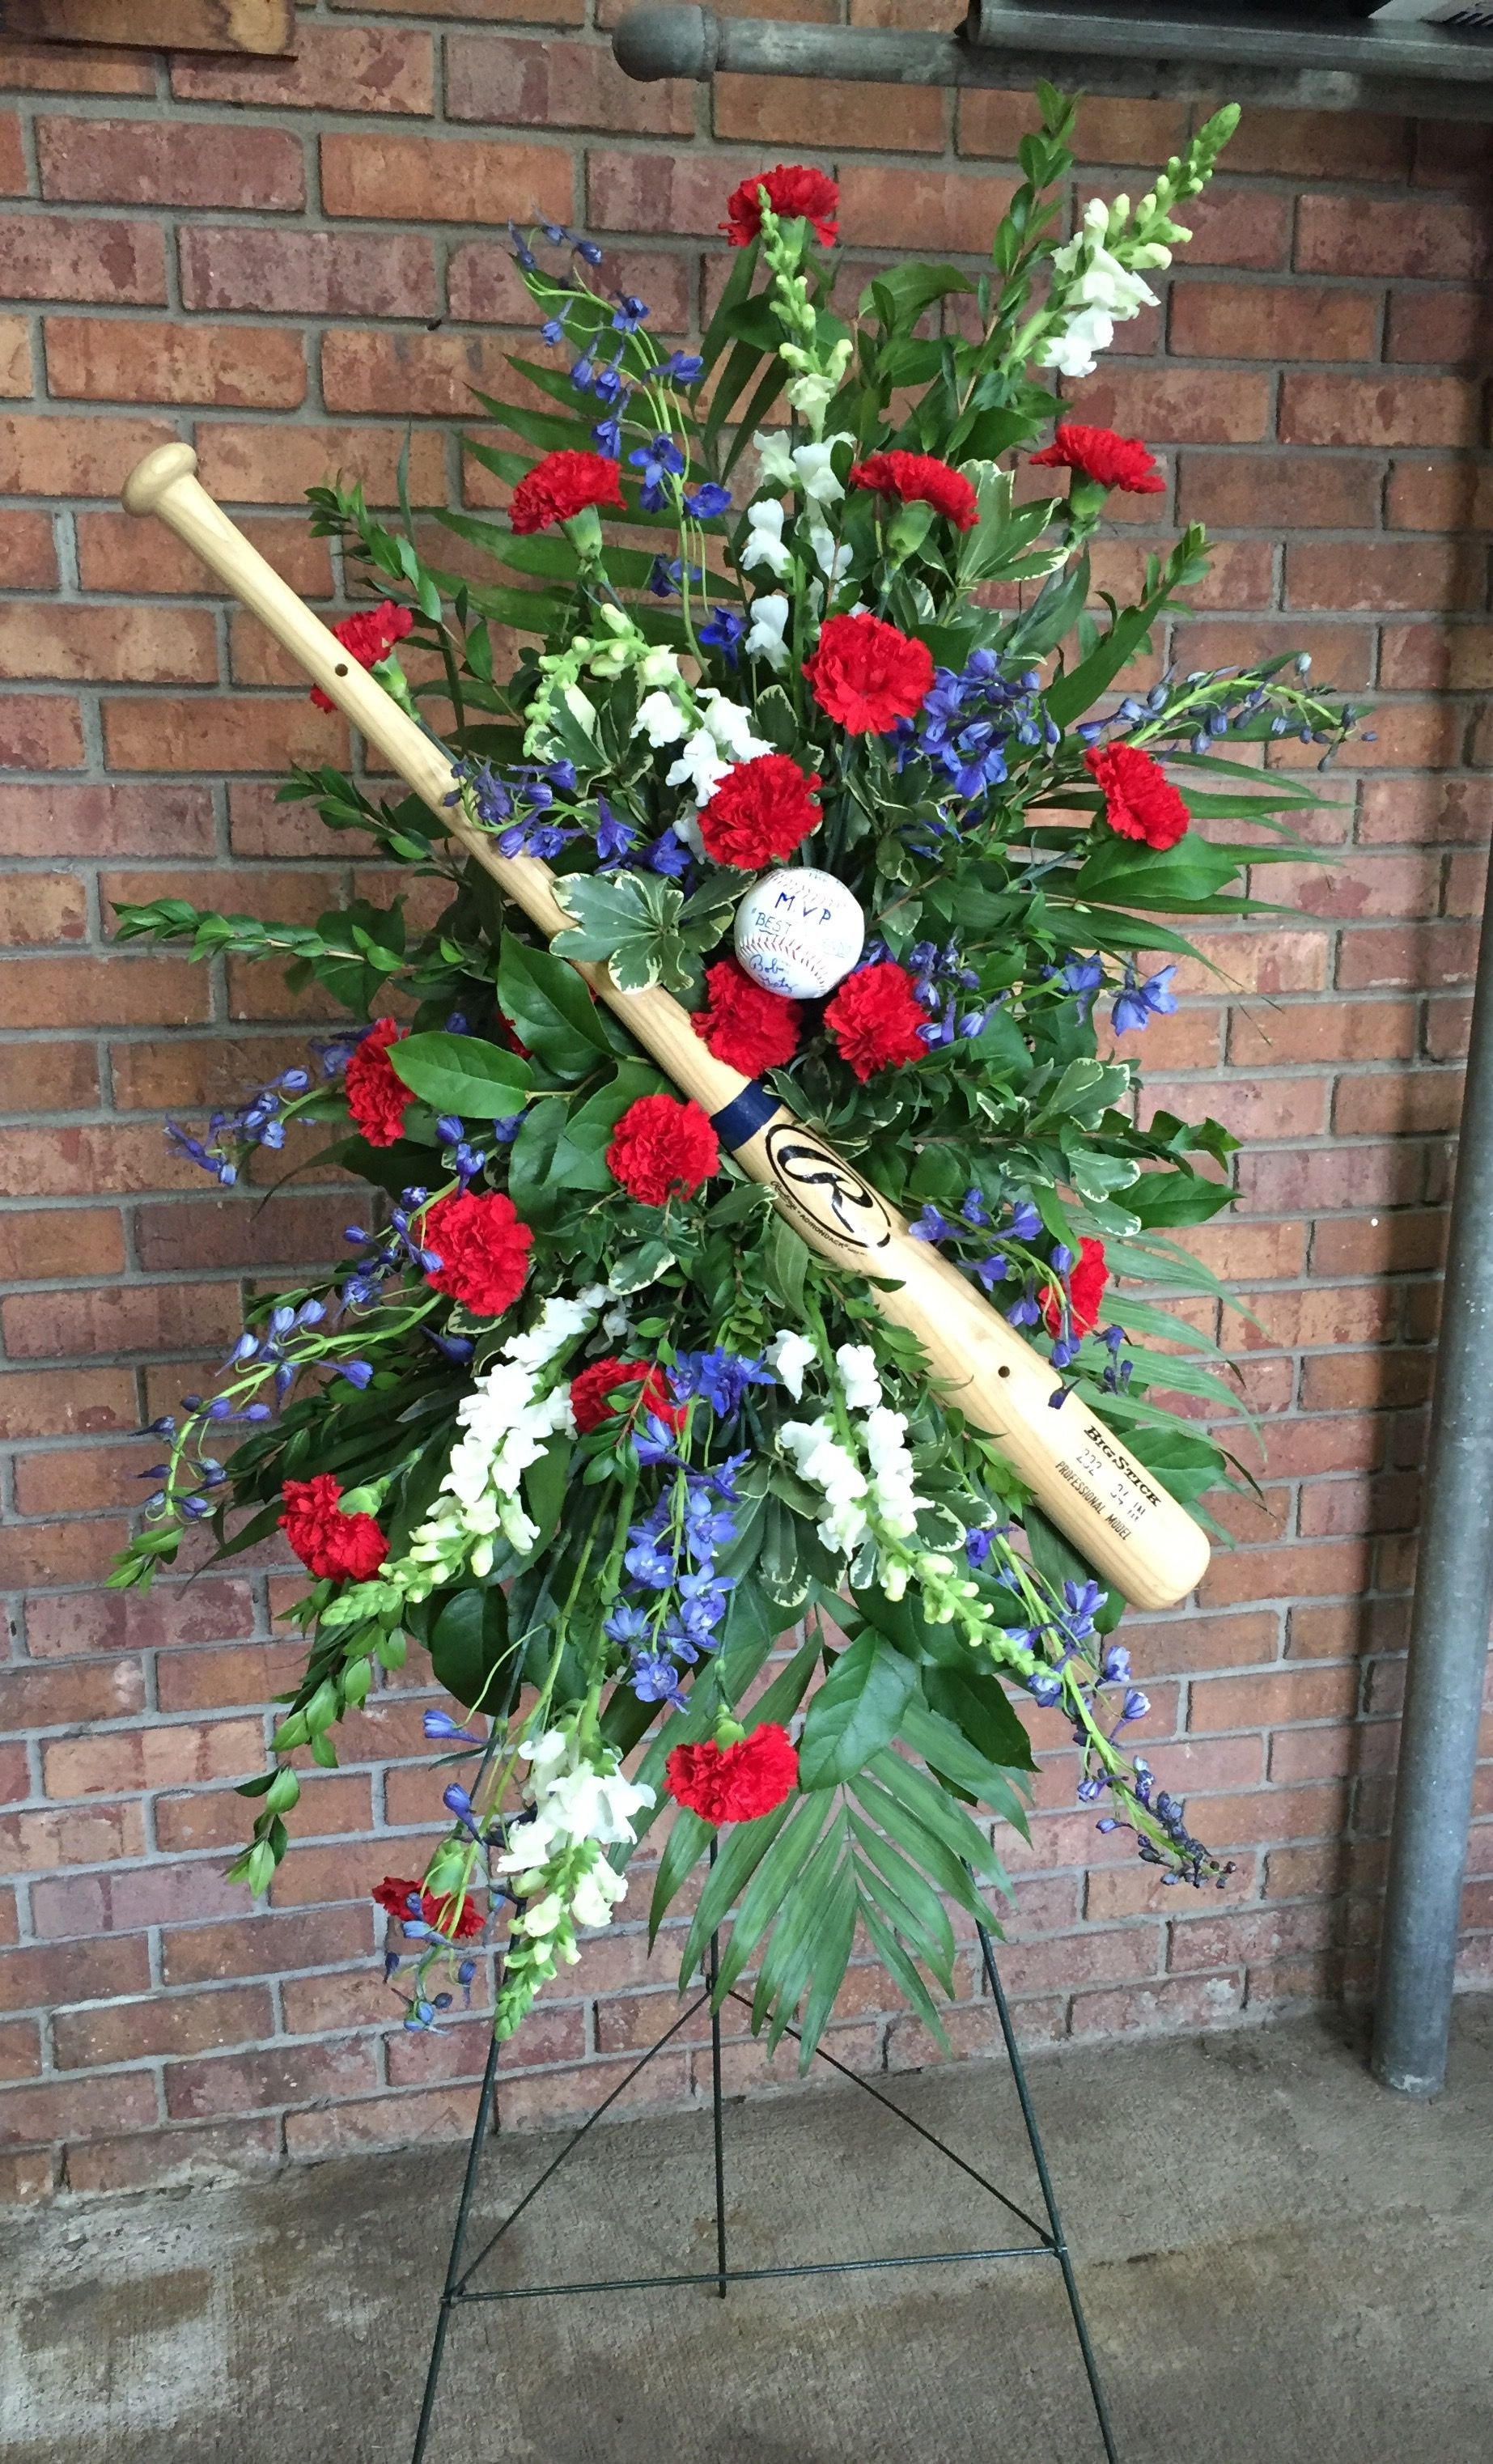 Floral arrangement created by jackson florist flowerarrangement floral arrangement created by jackson florist flowerarrangement funeralflowers sympathyflowers funeral izmirmasajfo